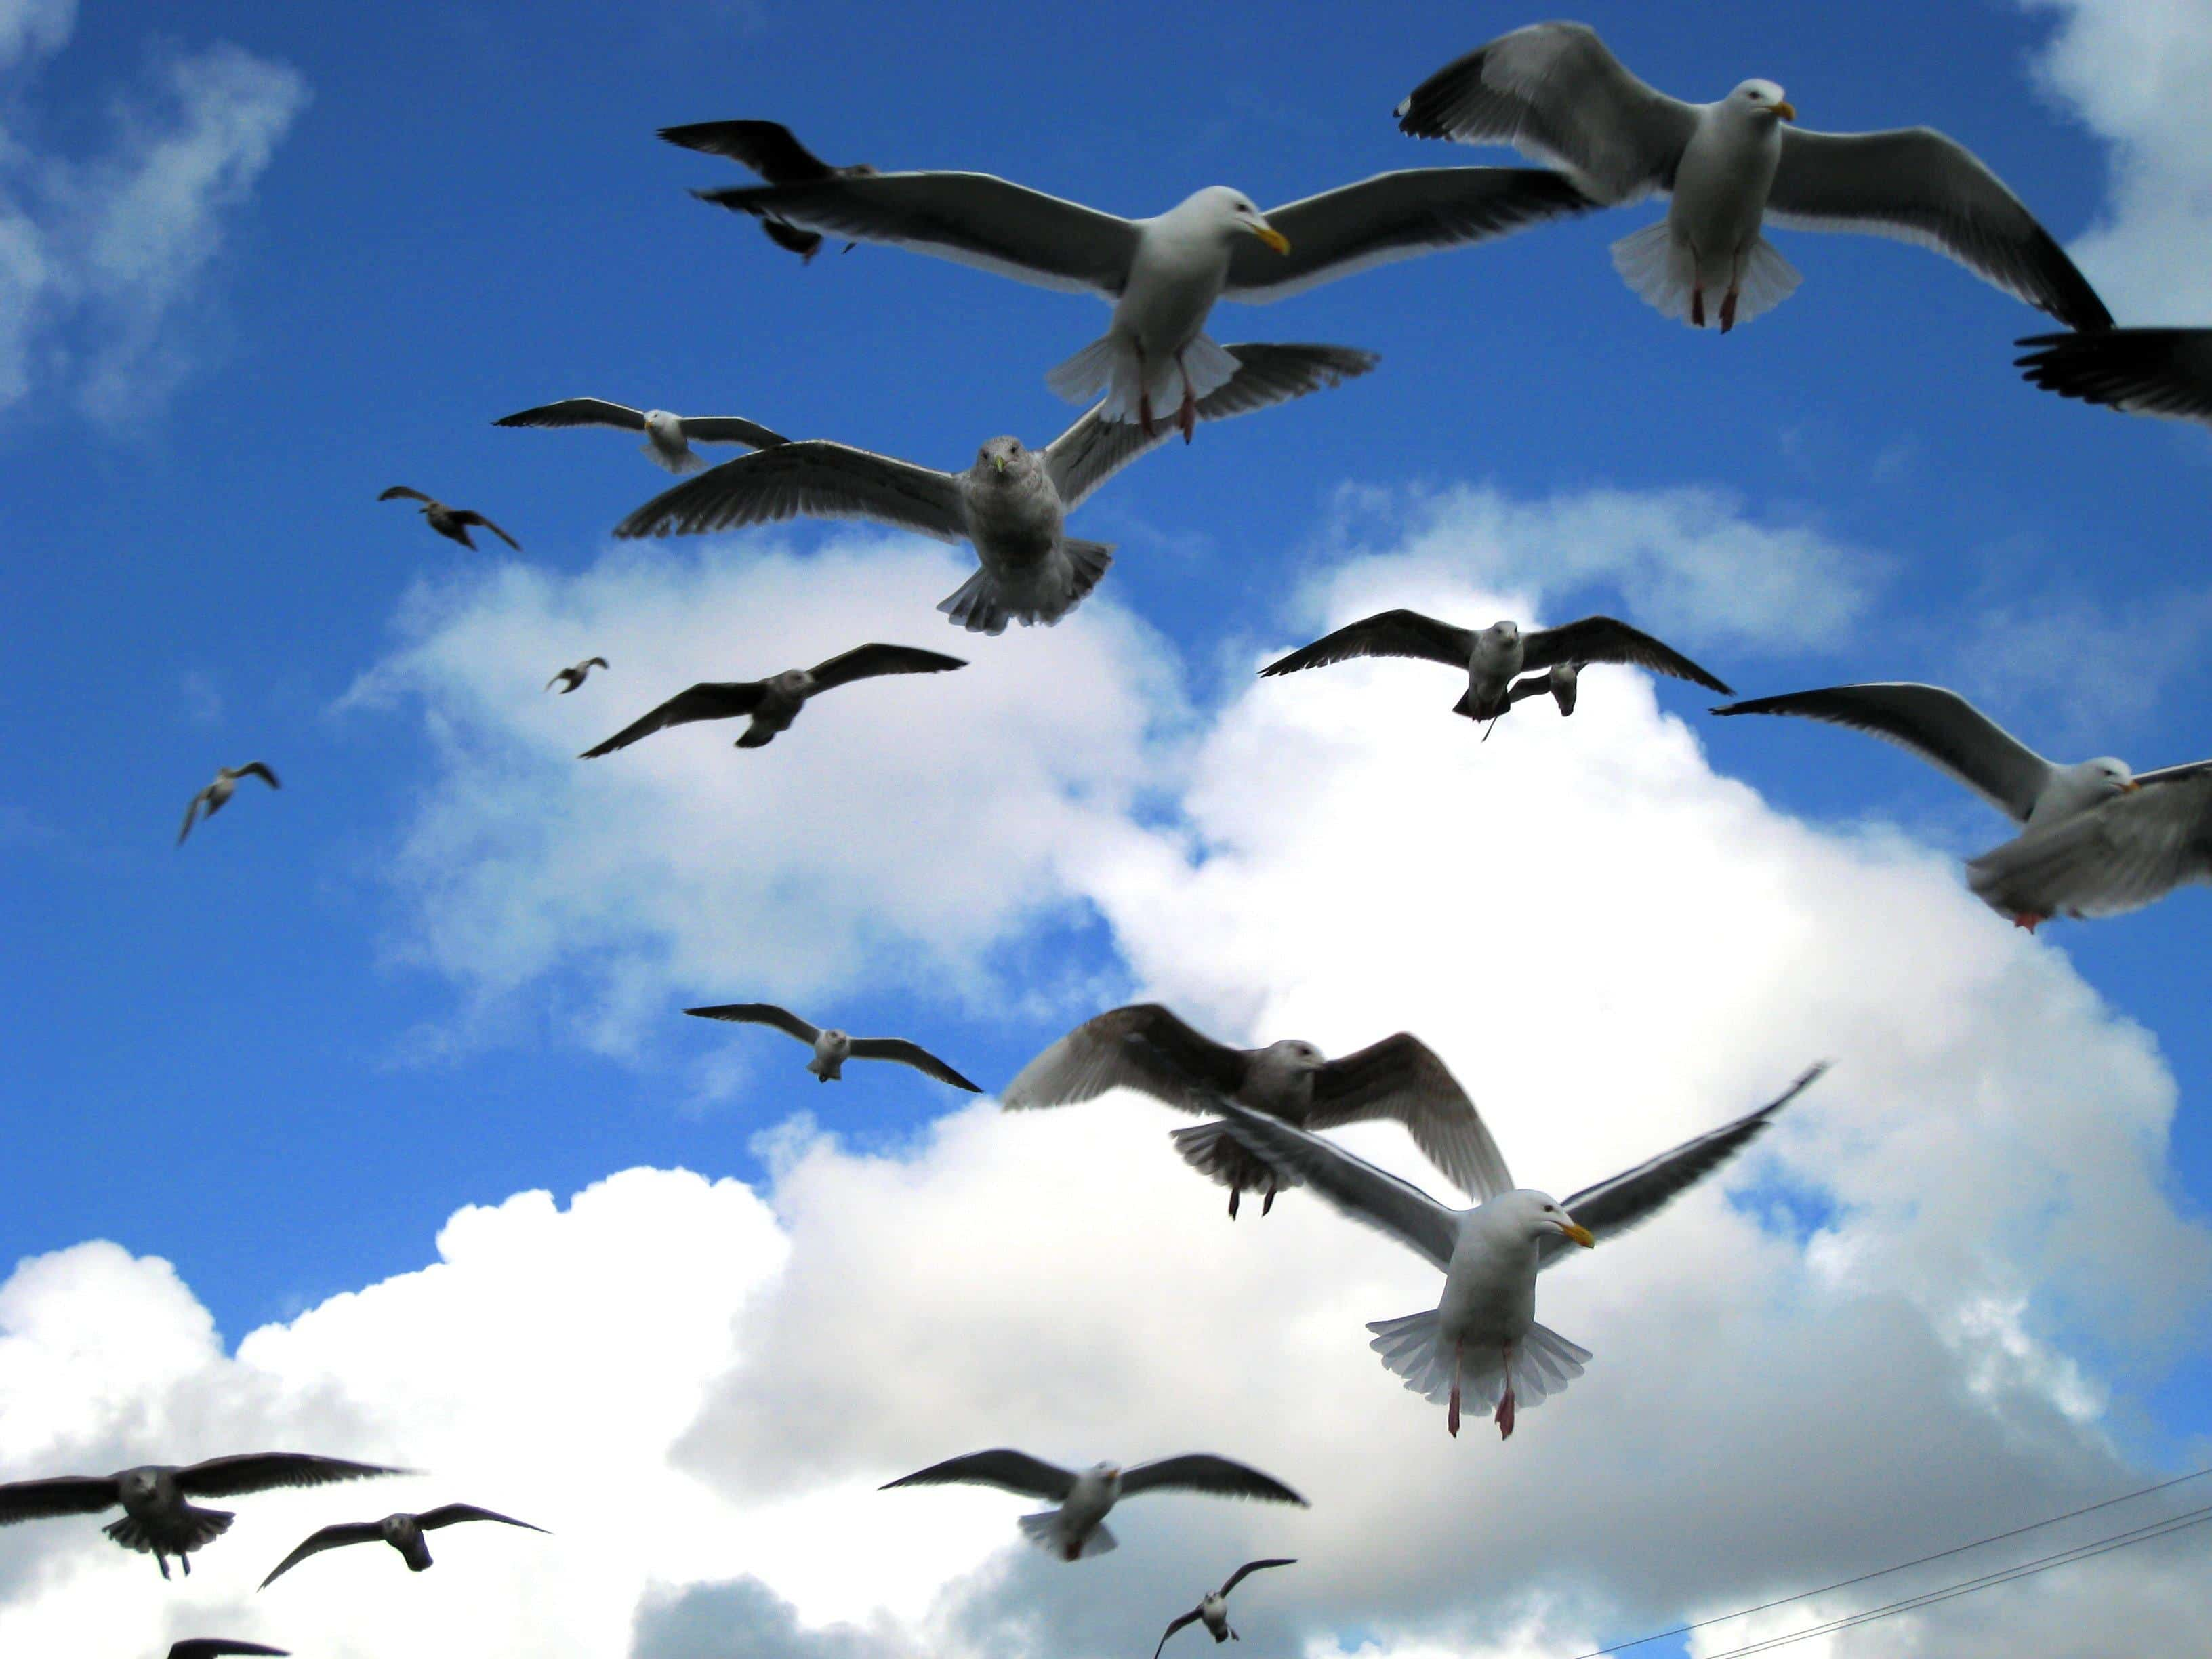 seagulls on flight